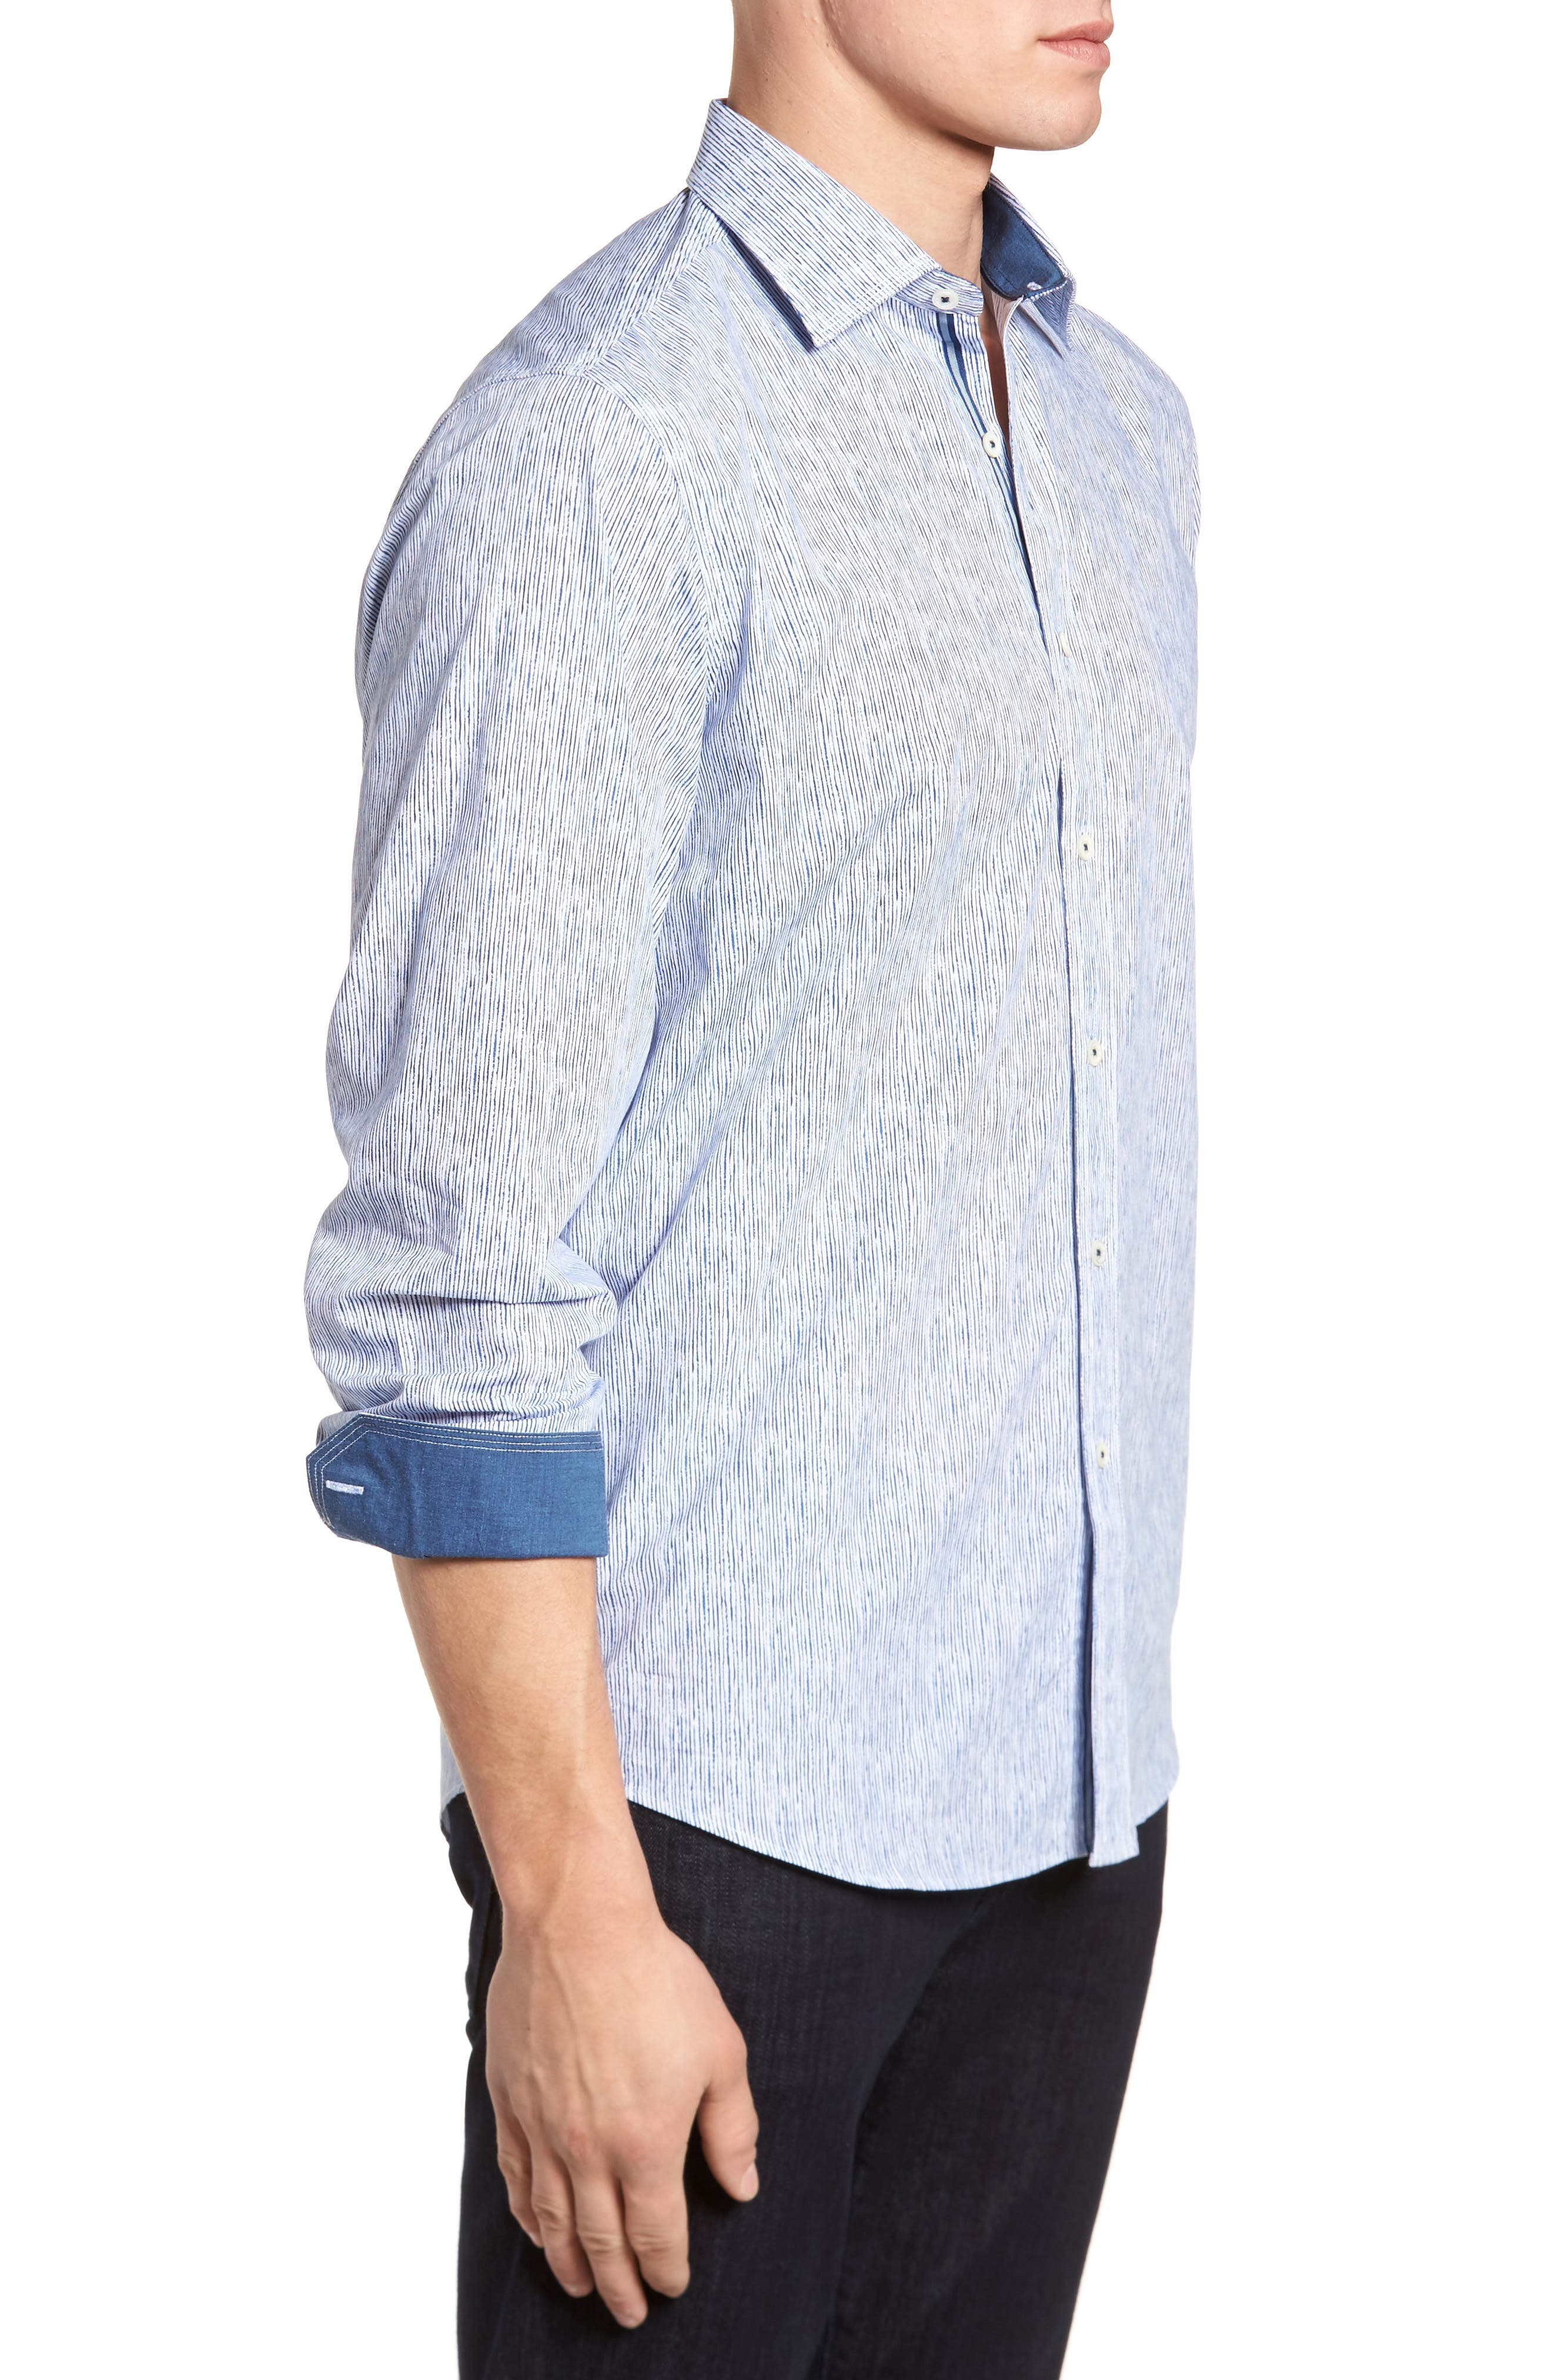 Freehand Pin Lines Classic Fit Sport Shirt,                             Alternate thumbnail 3, color,                             100